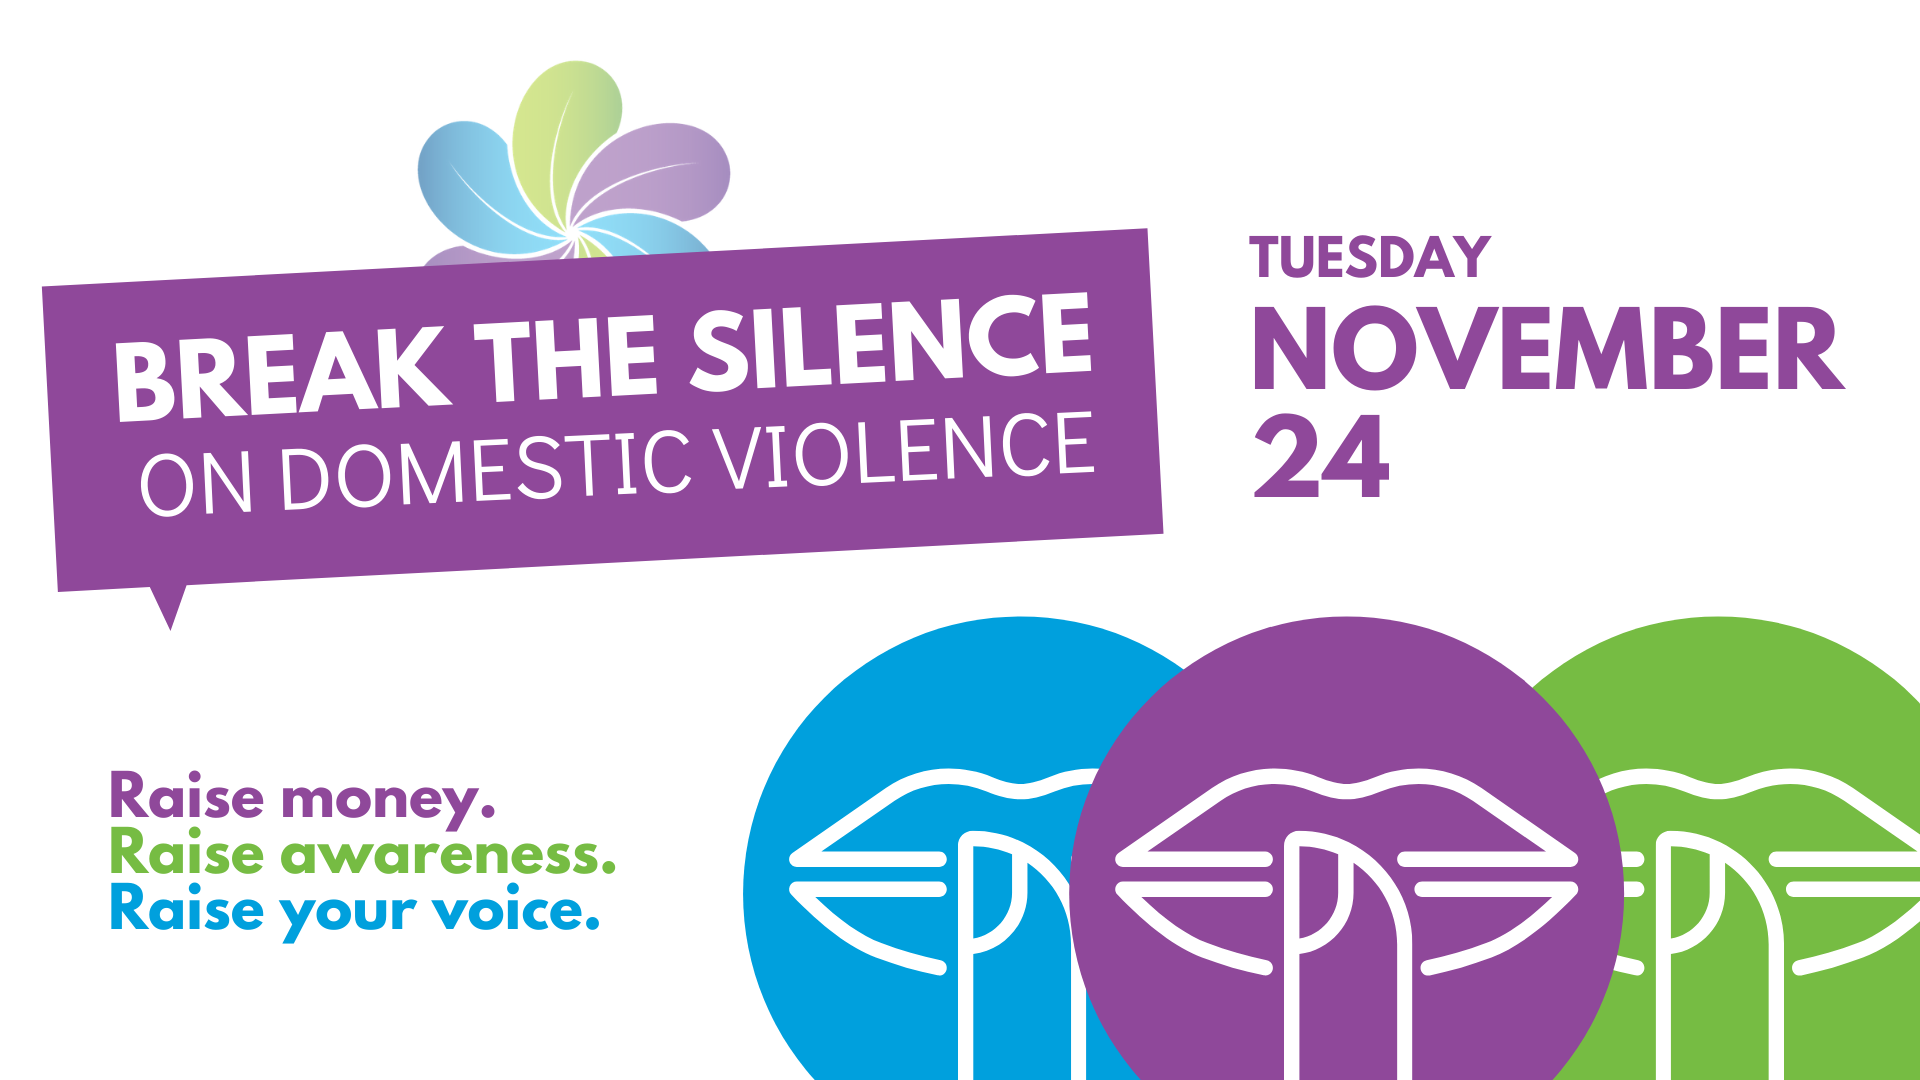 Break The Silence on Domestic Violence